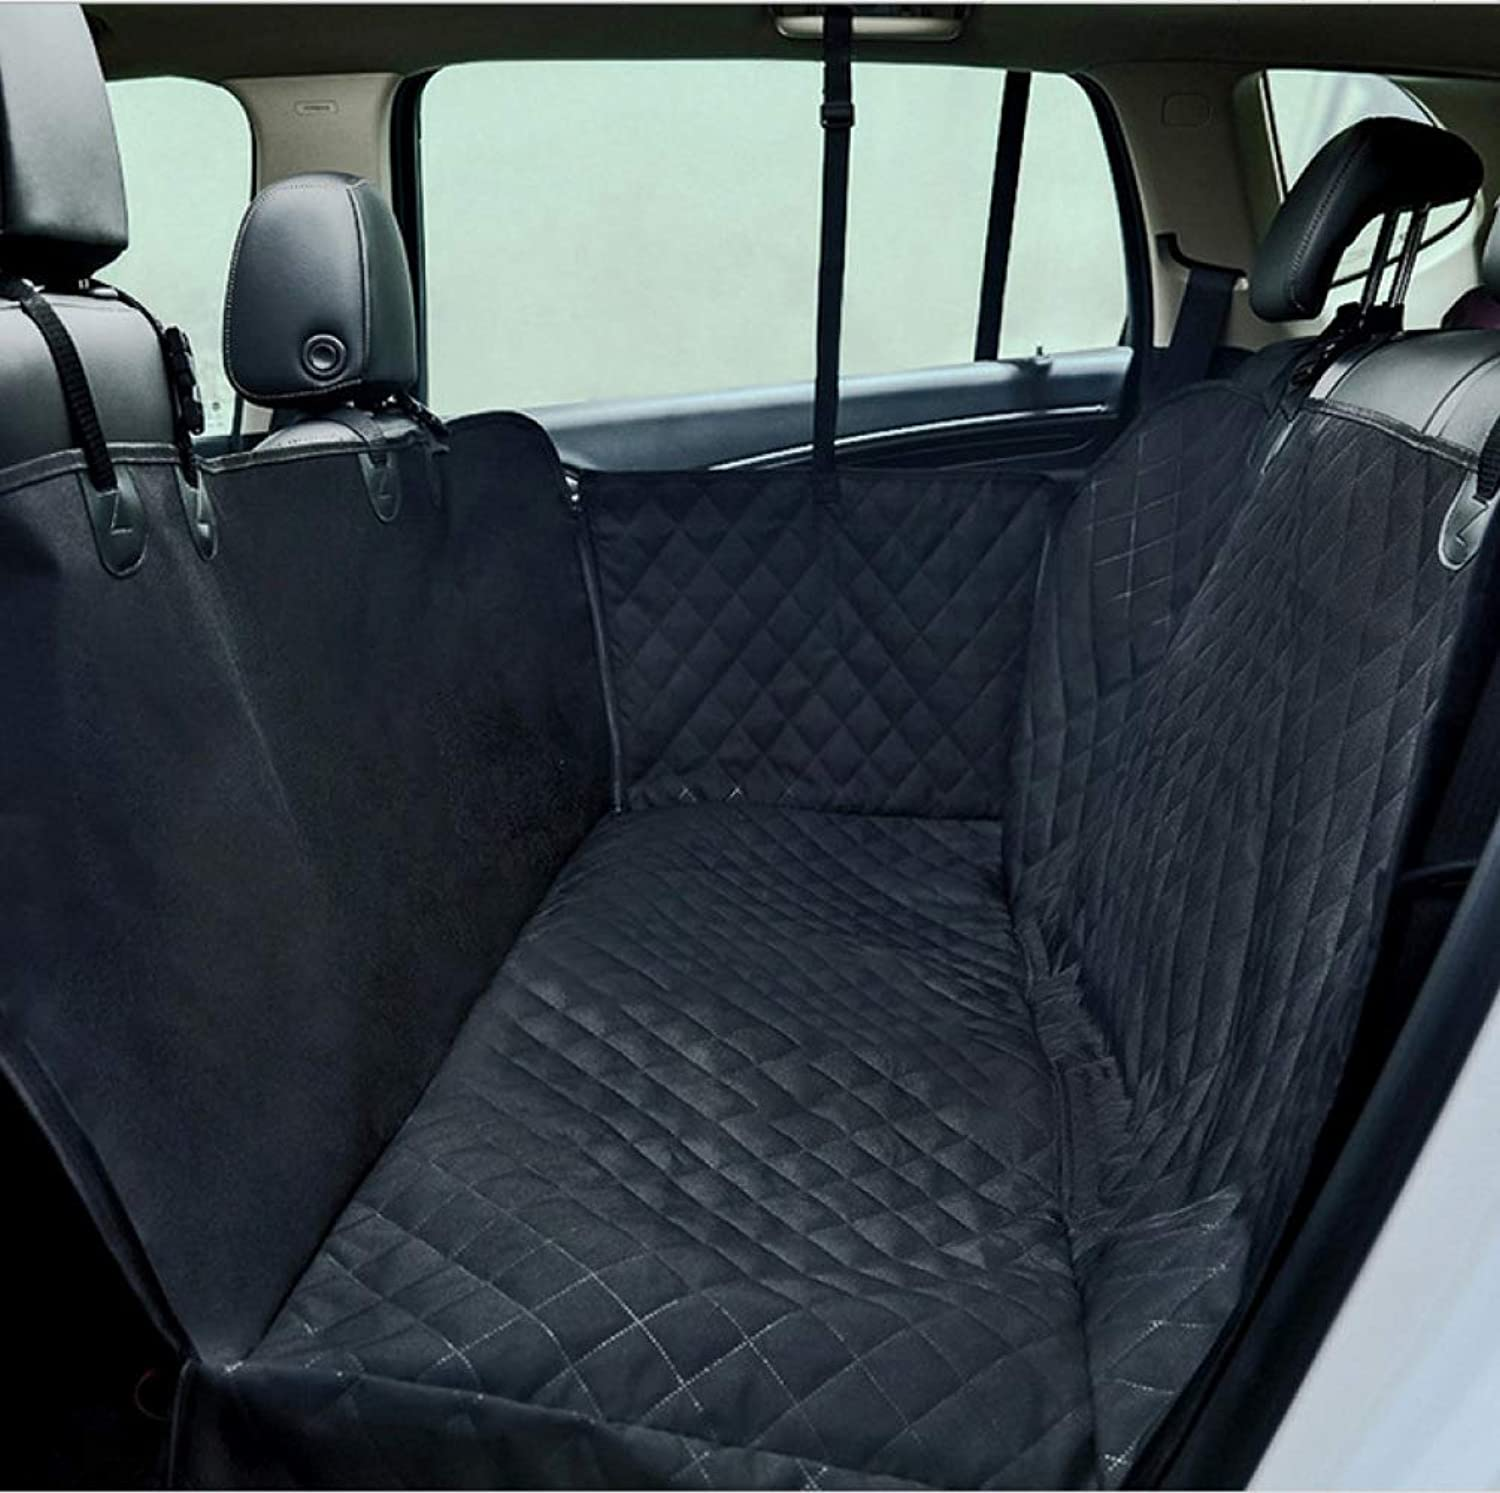 FJTHY Car Pet Mat Thick Reinforcement Car Pet Mat with Zipper Comfortable and Convenient Keep the Car Clean and Tidy,Black,One Size